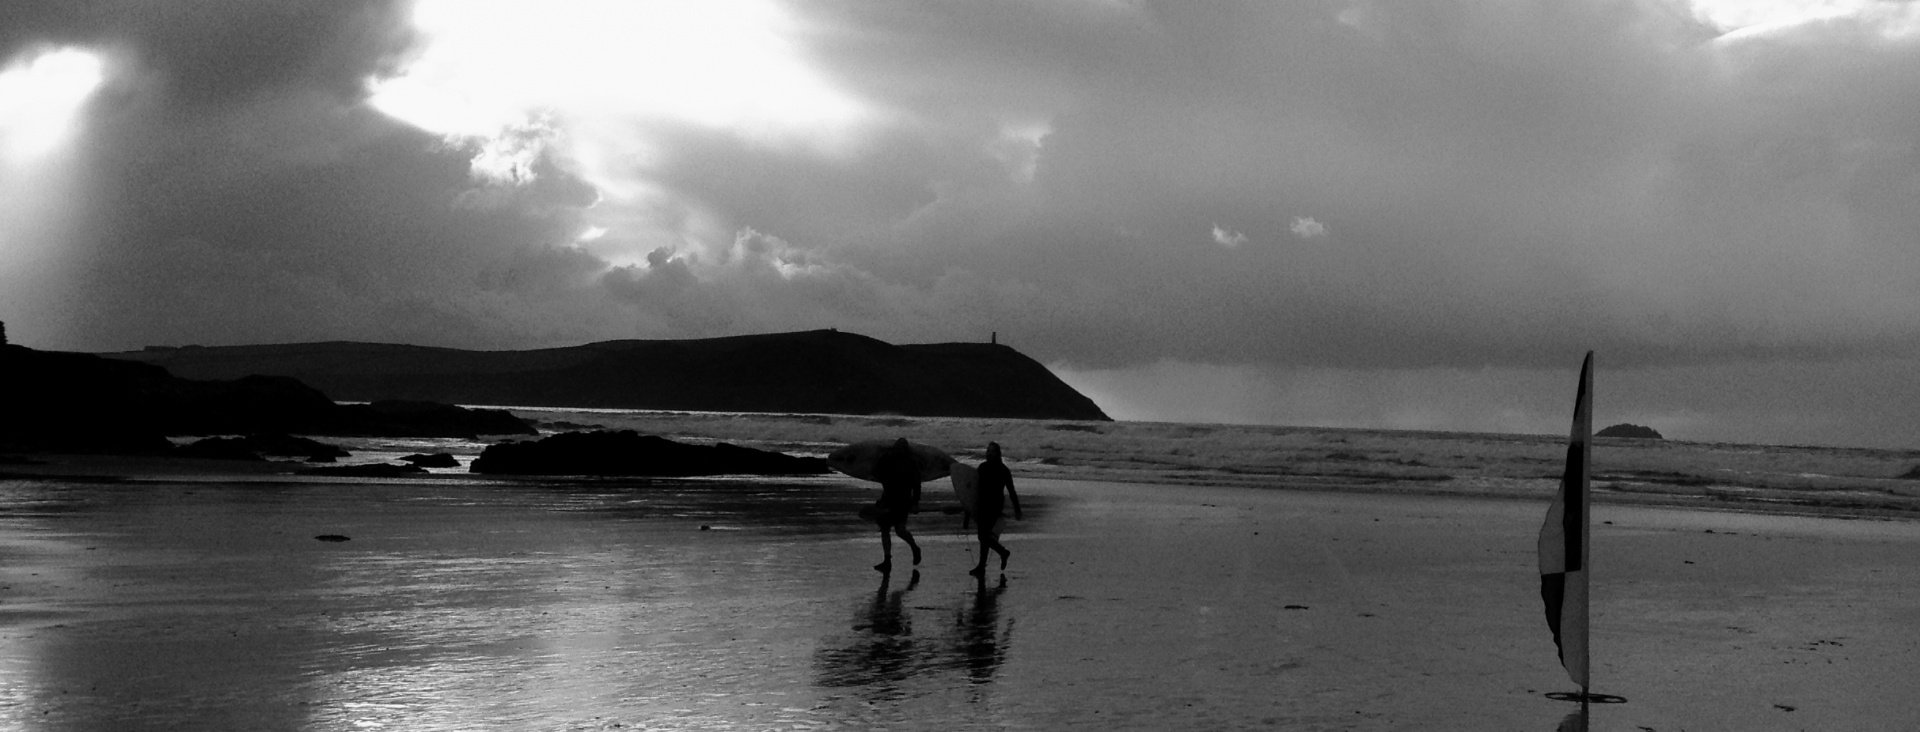 Brad Nicholls's photo of Polzeath